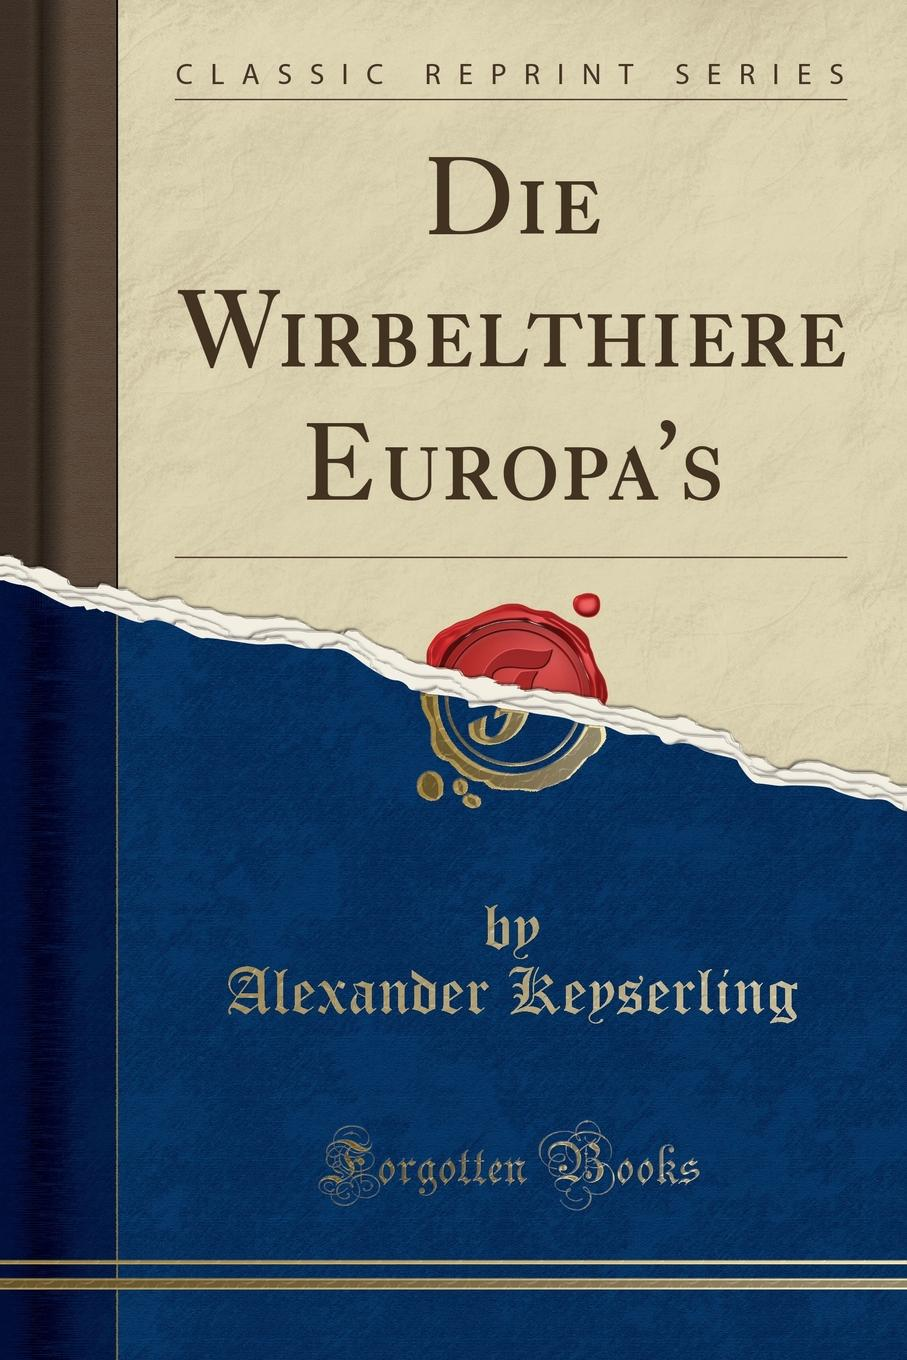 Die Wirbelthiere Europa.s (Classic Reprint)